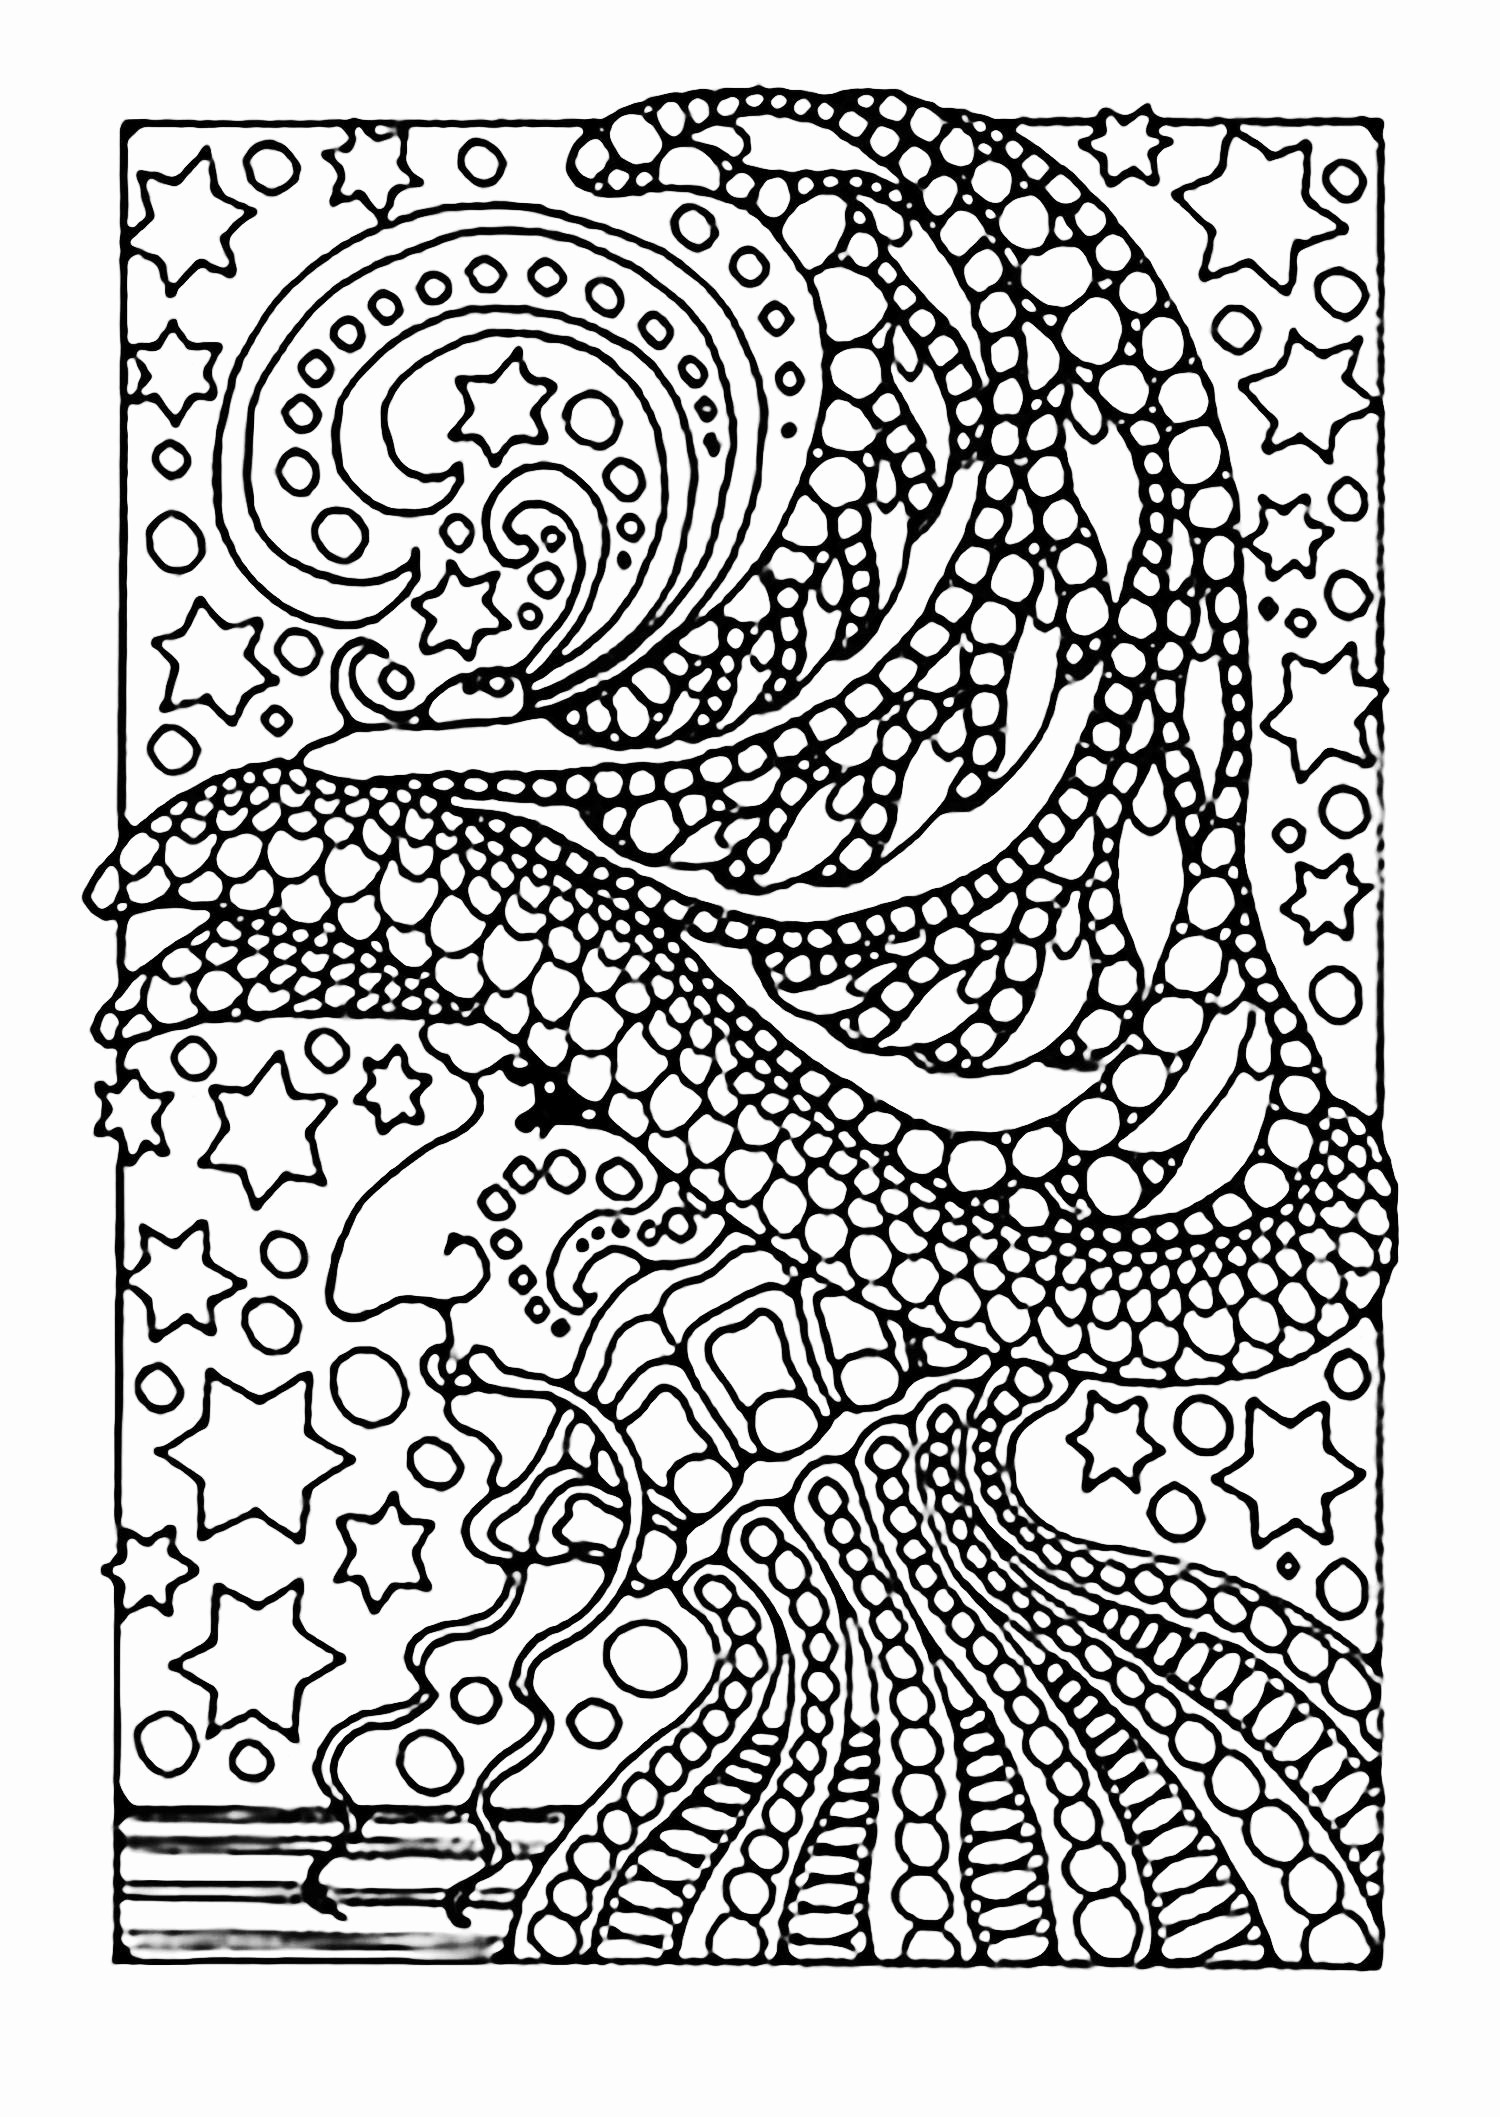 Graffiti Coloring Pages  to Print 4d - Free For kids